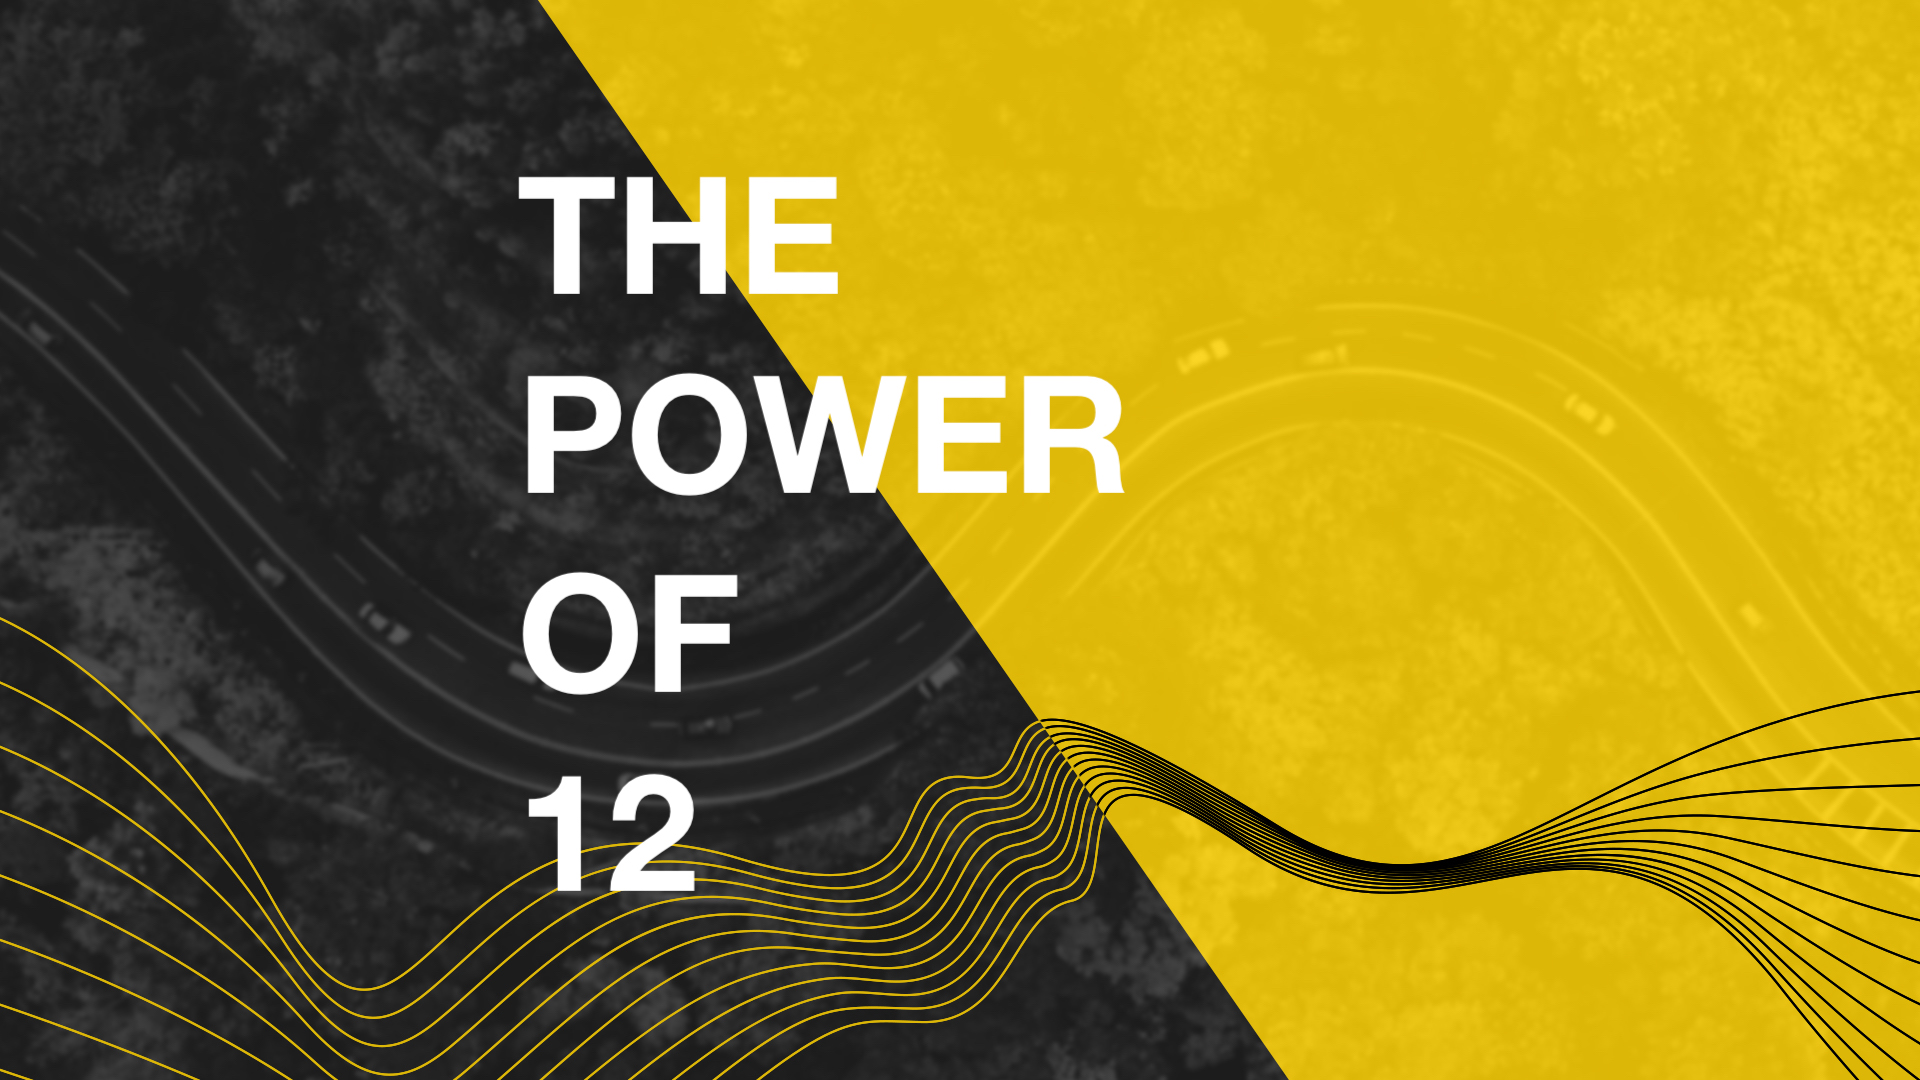 """THE POWER OF 12"" - 8/4/19"